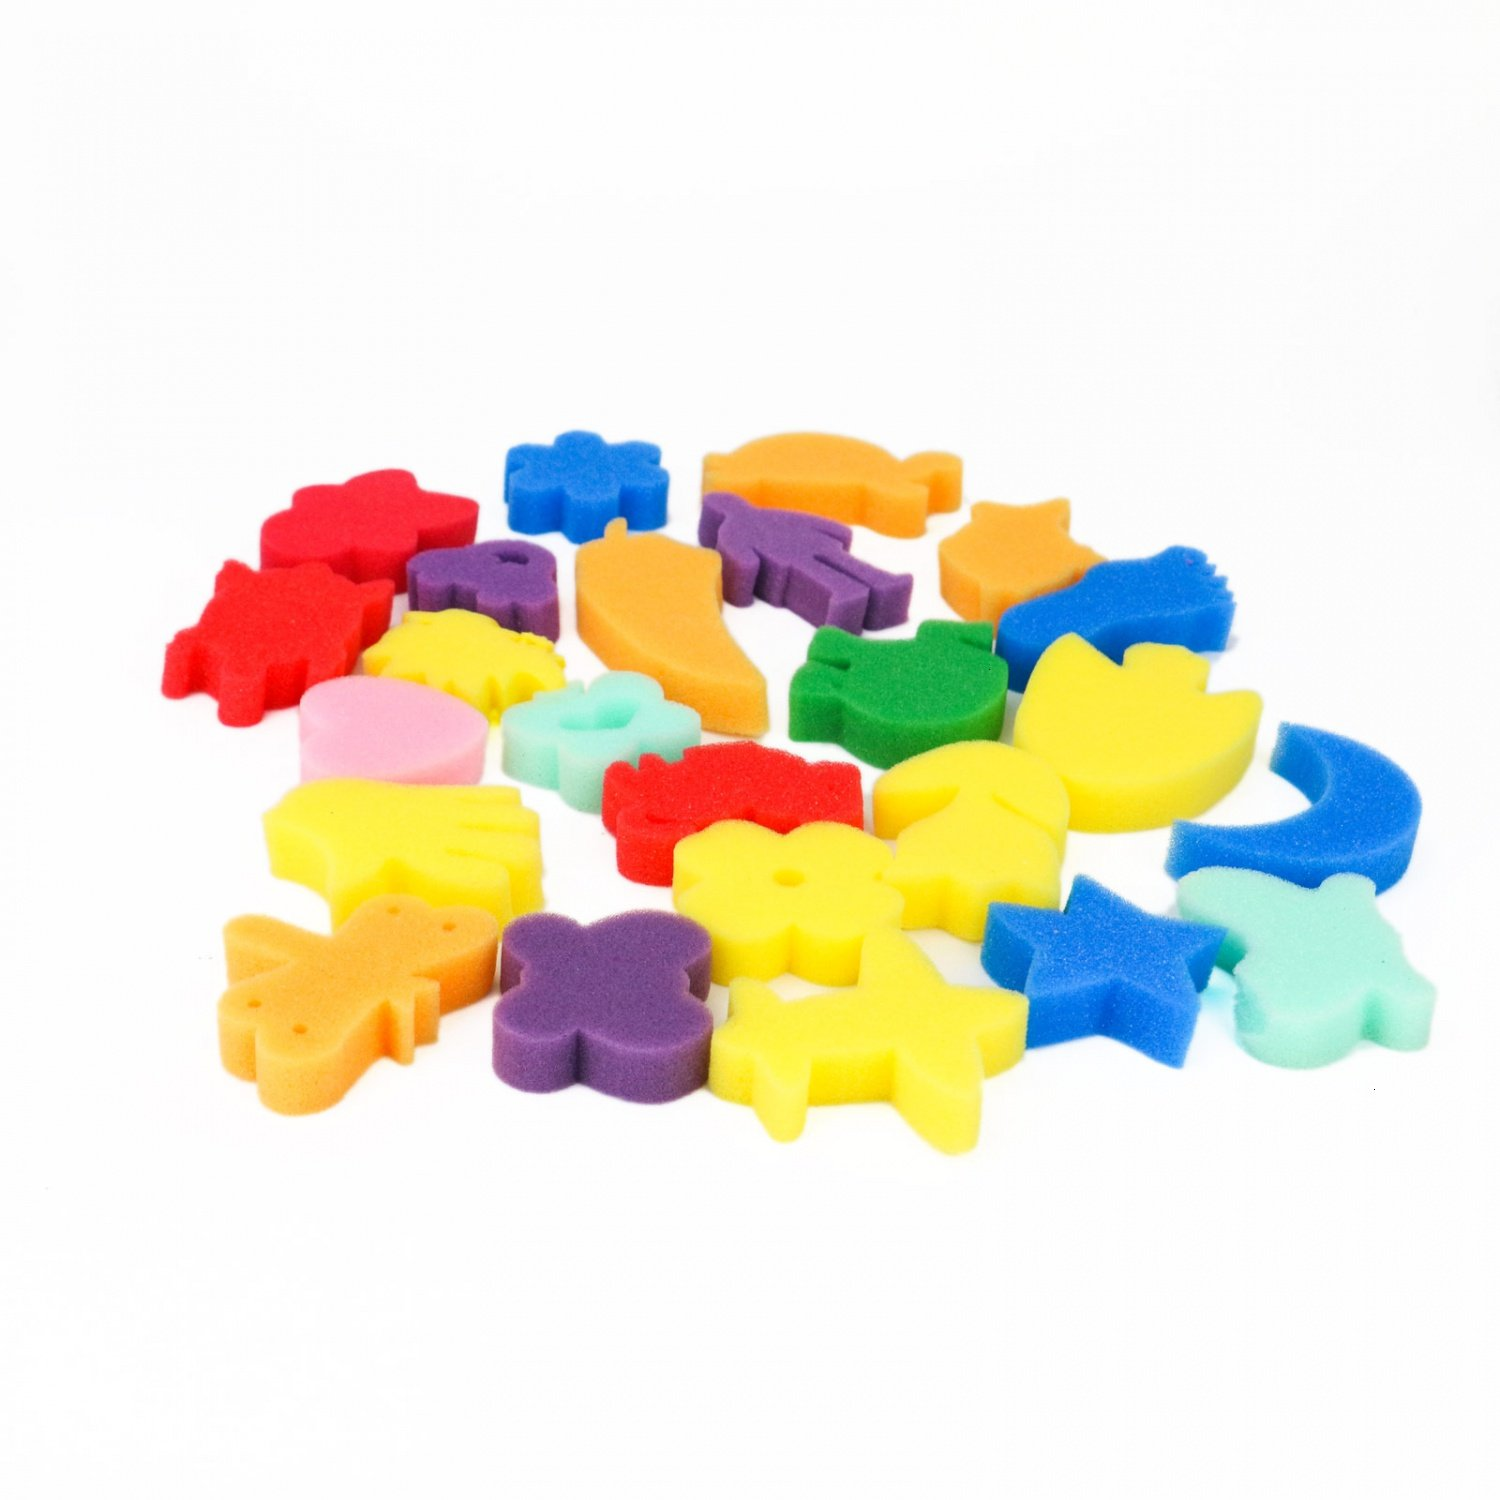 Buorsa 24pcs Sponge Painting Watercolor Craft Sponge Shapes Craft Early Learning for DIY Toddlers Assorted Pattern Sponge for Kids